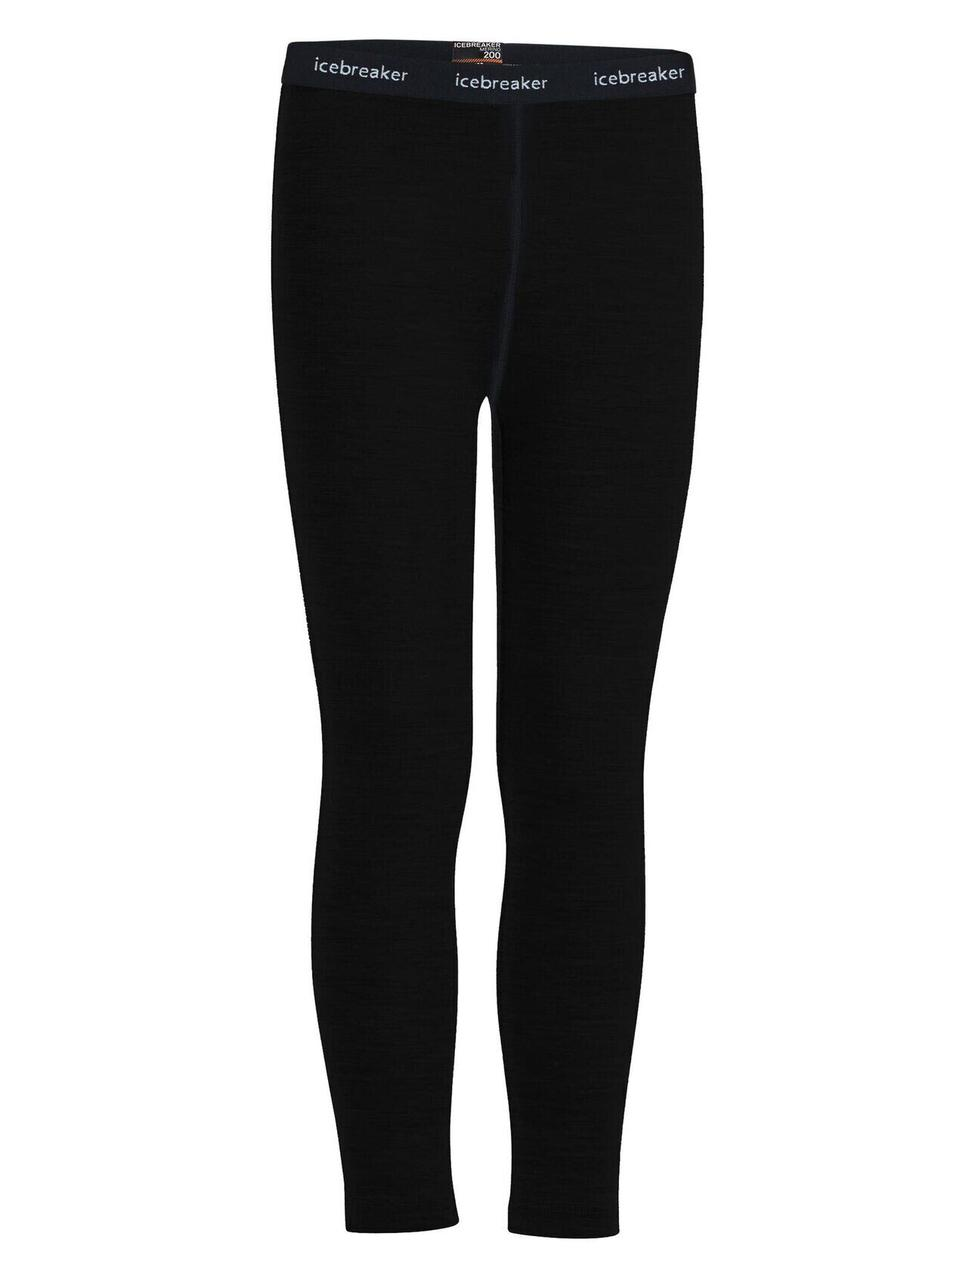 Термобрюки детские Icebreaker Kids' Merino 200 Oasis Thermal Leggings Black 10 (104 503 001 10)